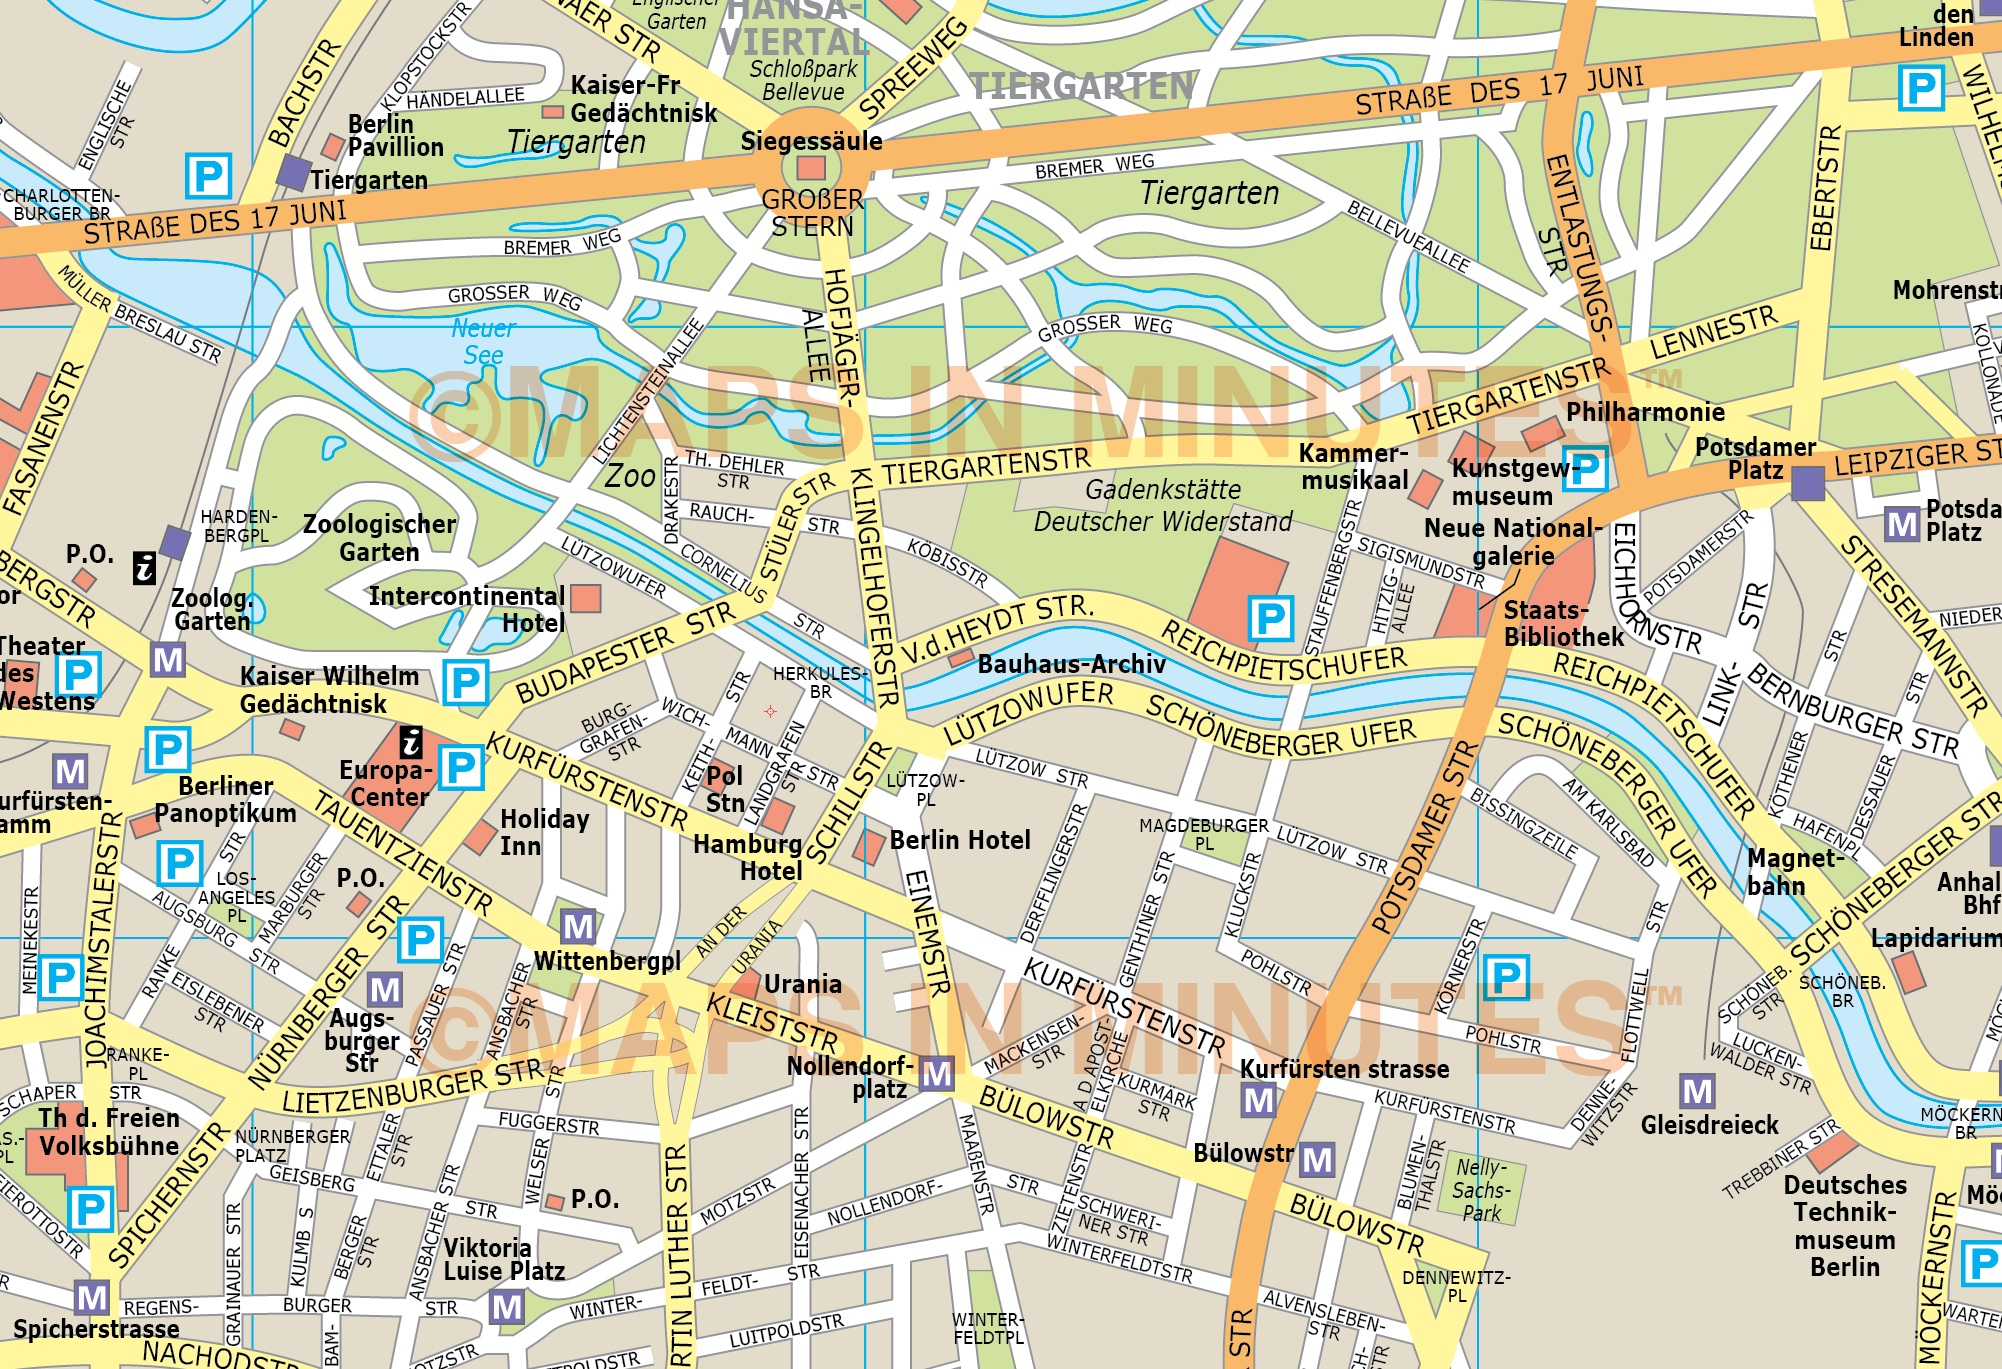 Map of Berlin tourist attractions, sightseeing & tourist tour